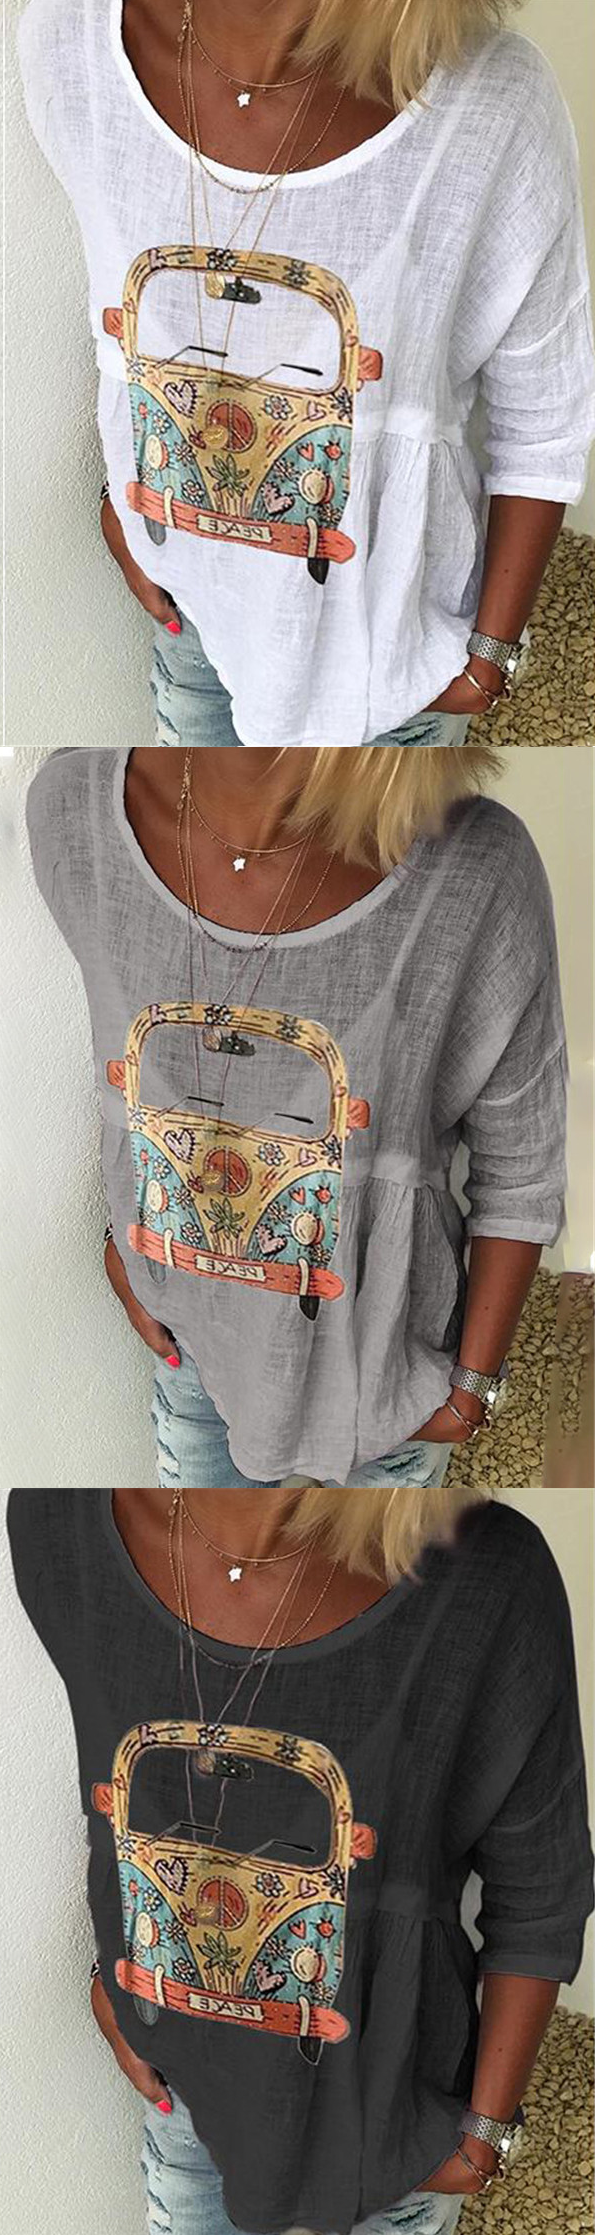 Shop Now>>75% OFF Casual Loose Tops for Your Choice All 2019 Hot Selling Must Have It! is part of Fashion outfits -